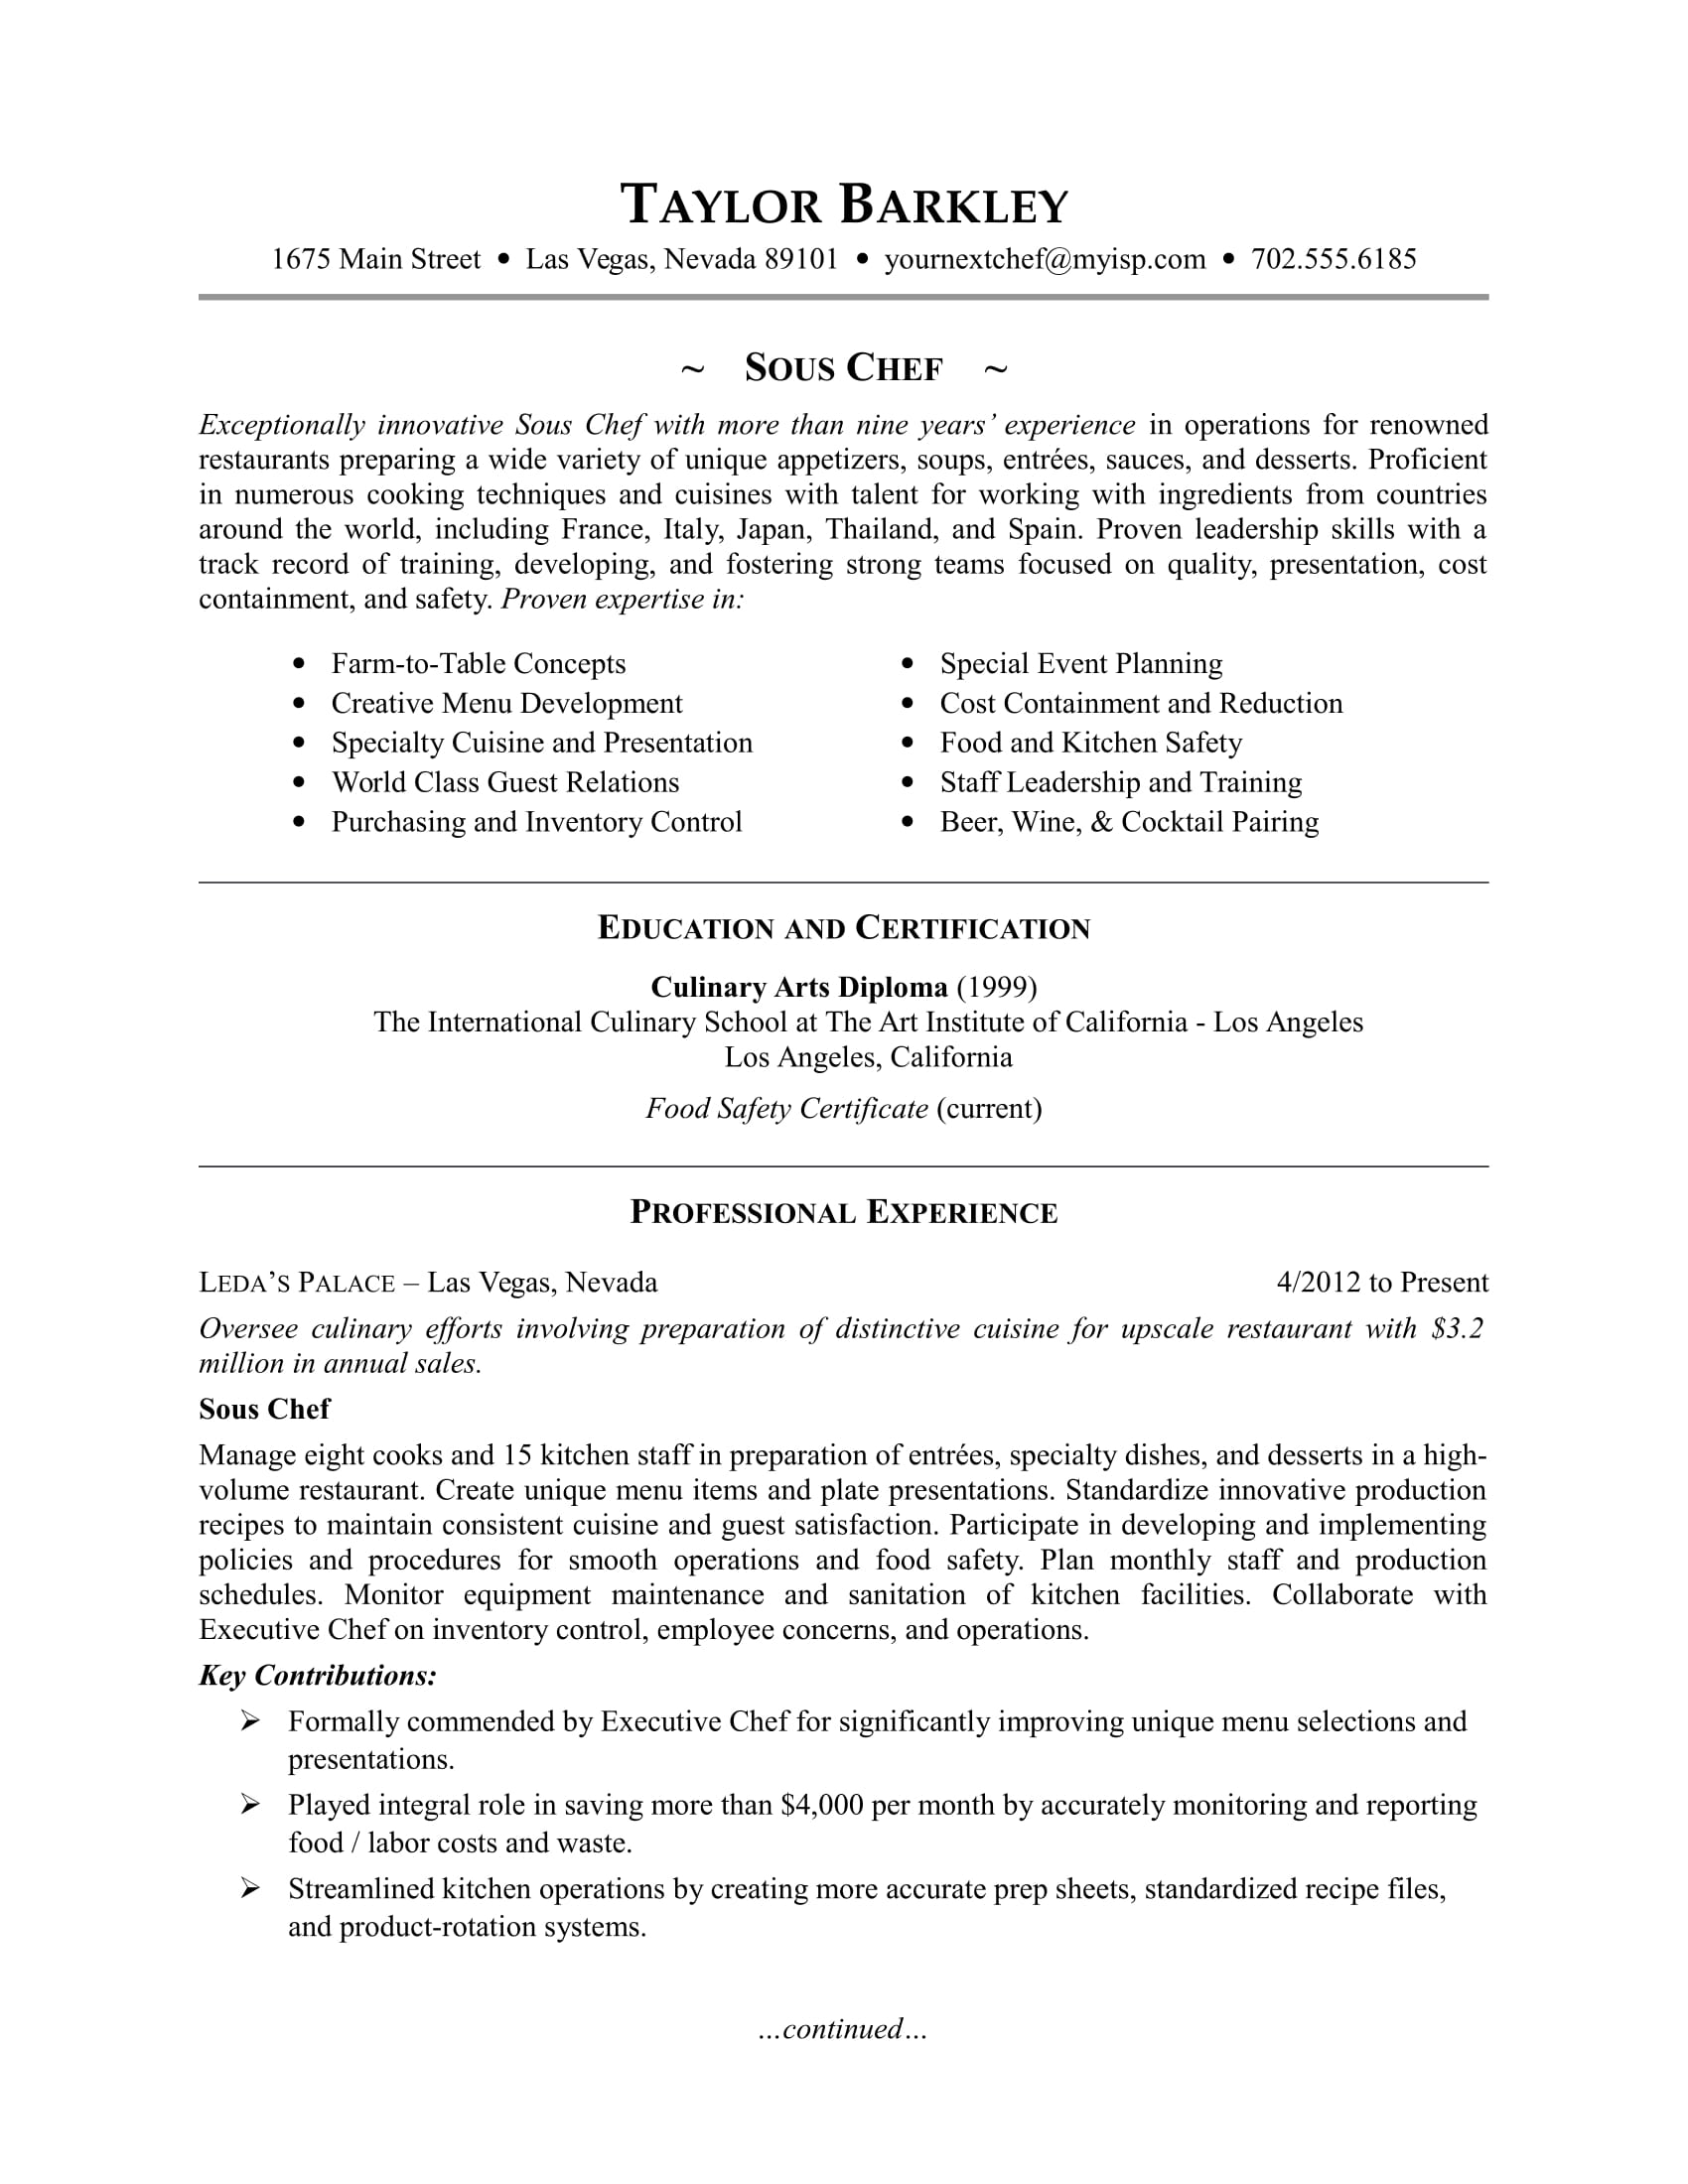 Sample Resume For A Sous Chef  Resume For